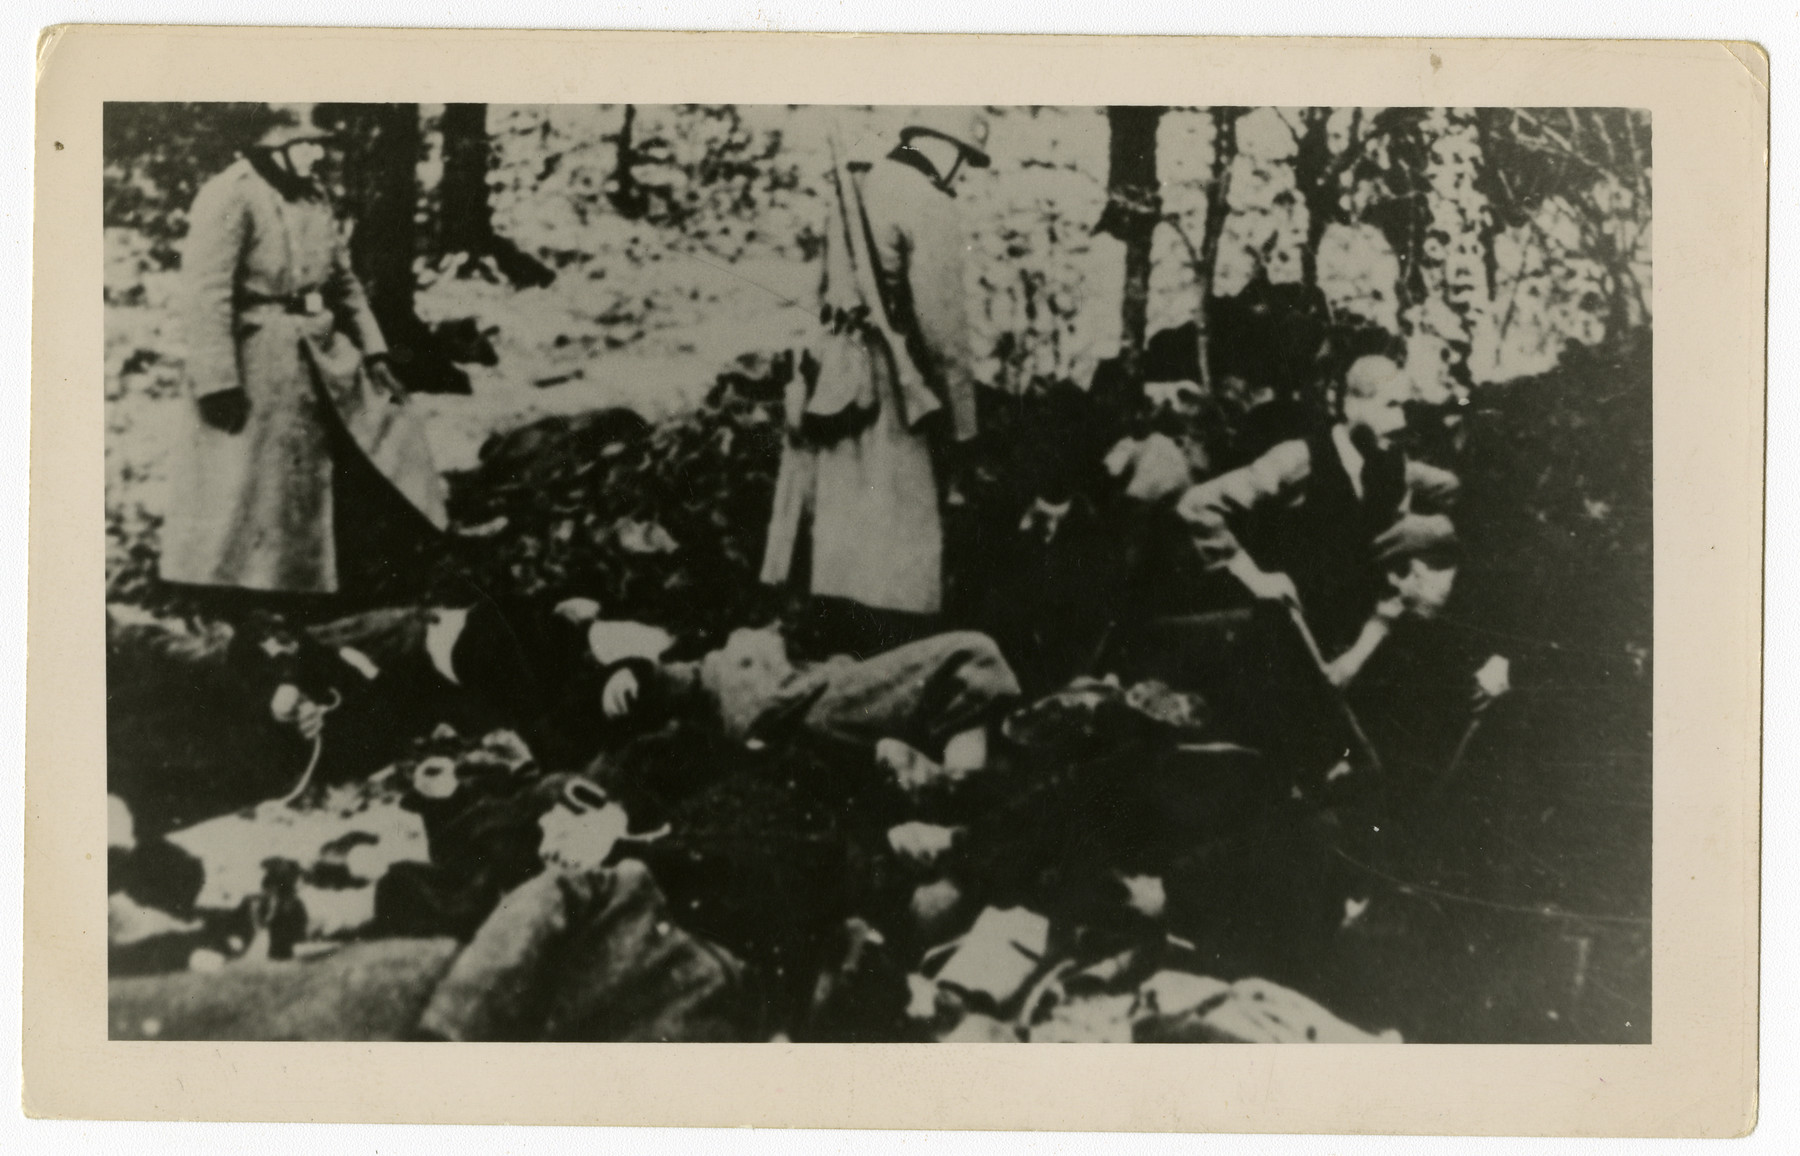 Men with shovels dig pits next to the corpses of those recently executed by German police,  This copy print is one of twenty-six photographs contained in an album found by Jacob Igra in an apartment in Sosnowiec after the war. Many of the photographs are believed to have been taken by a soldier with the SD-SIPO (Sicherheitspolizei) following the invasion of Poland in 1939. Additional photographs depict einsatzgruppen activities at sites throughout Nazi occupied Eastern Europe and are likely later additions to the album.